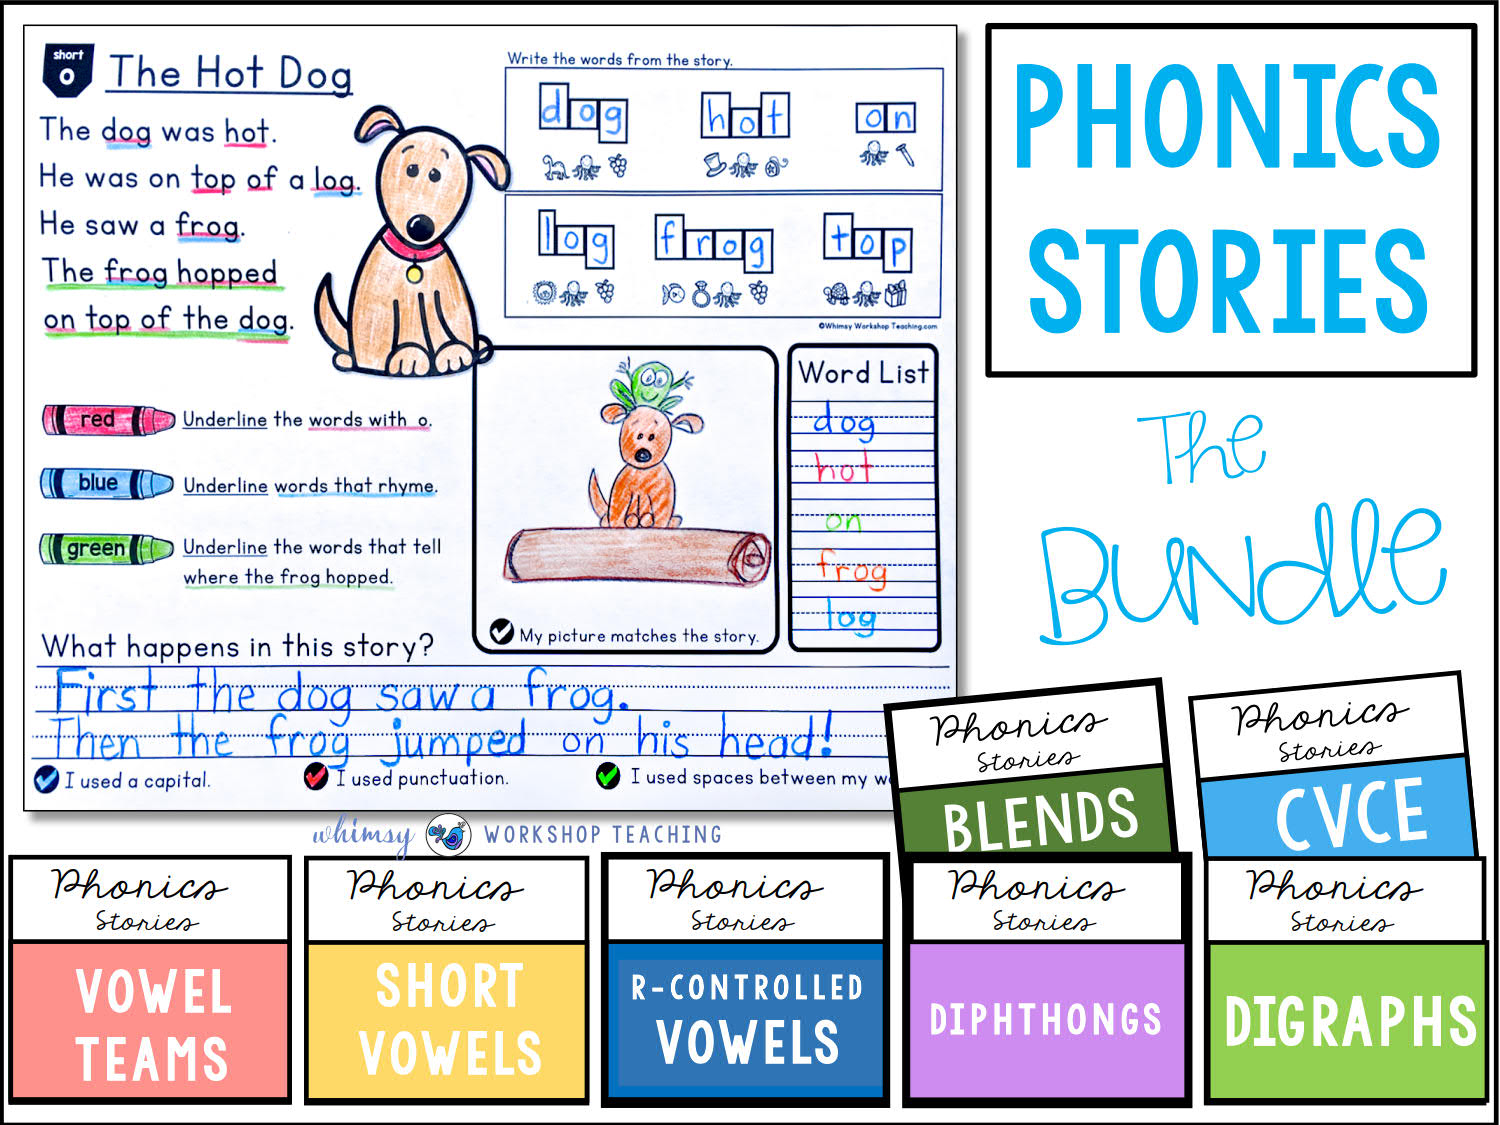 Phonics Stories Reading and Writing BUNDLE learning English Short Stories, Phonics Homeschool PDF electronic file